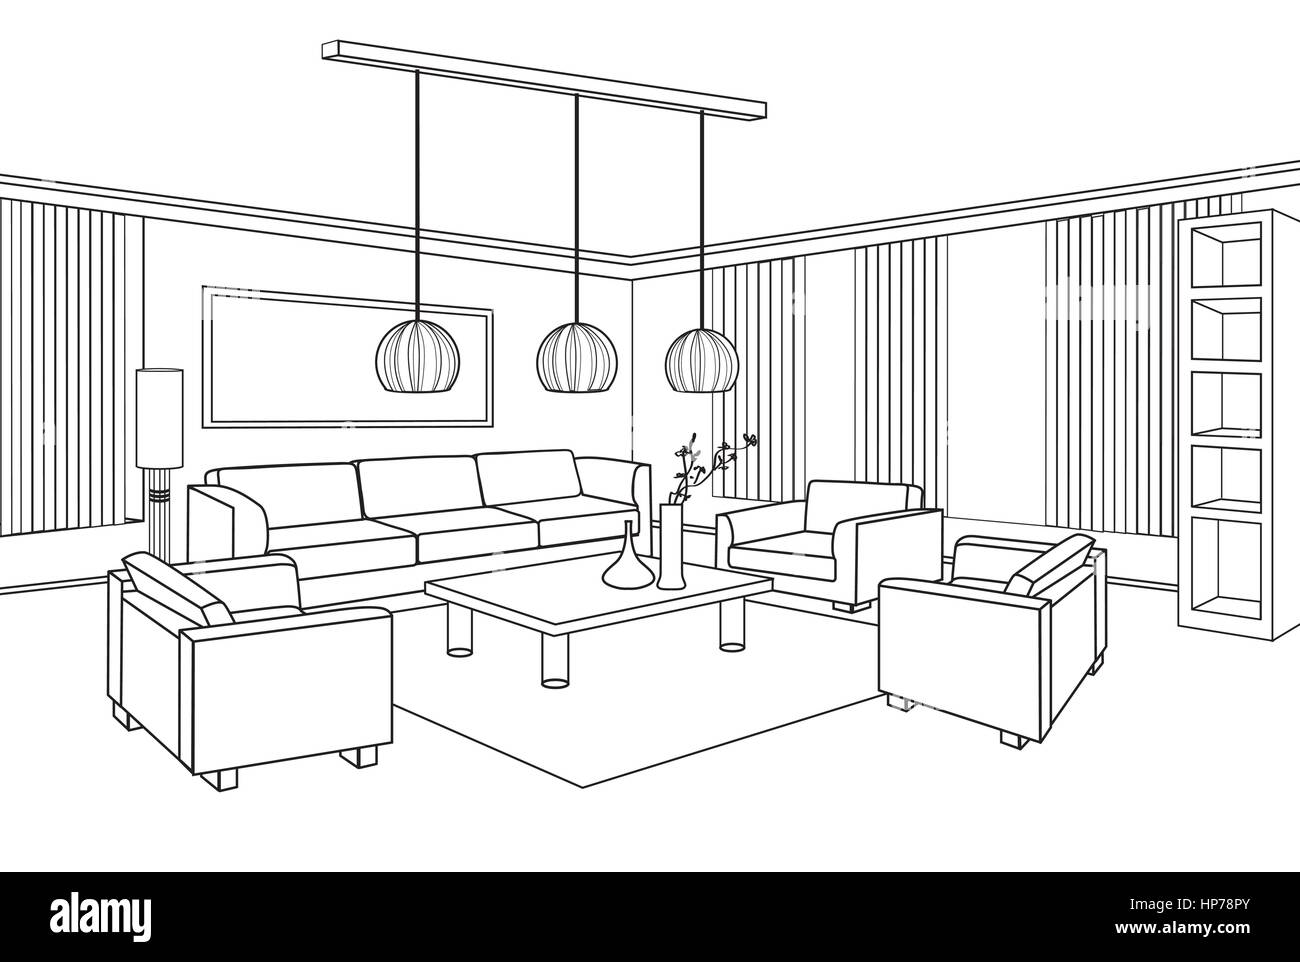 Living room view interior outline sketch furniture for Interior design images vector